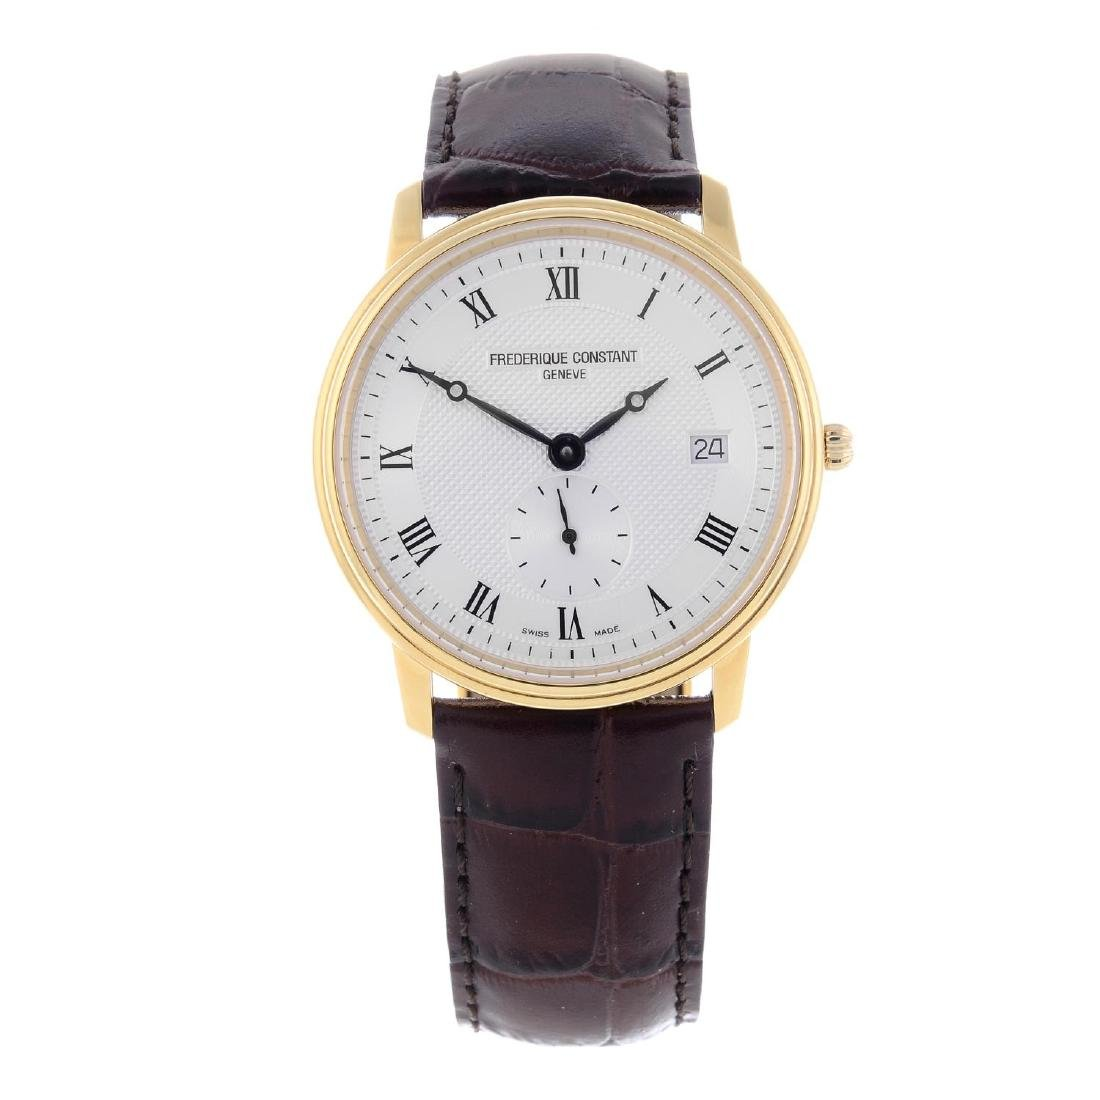 FREDERIQUE CONSTANT - a gentleman's gold plated wrist